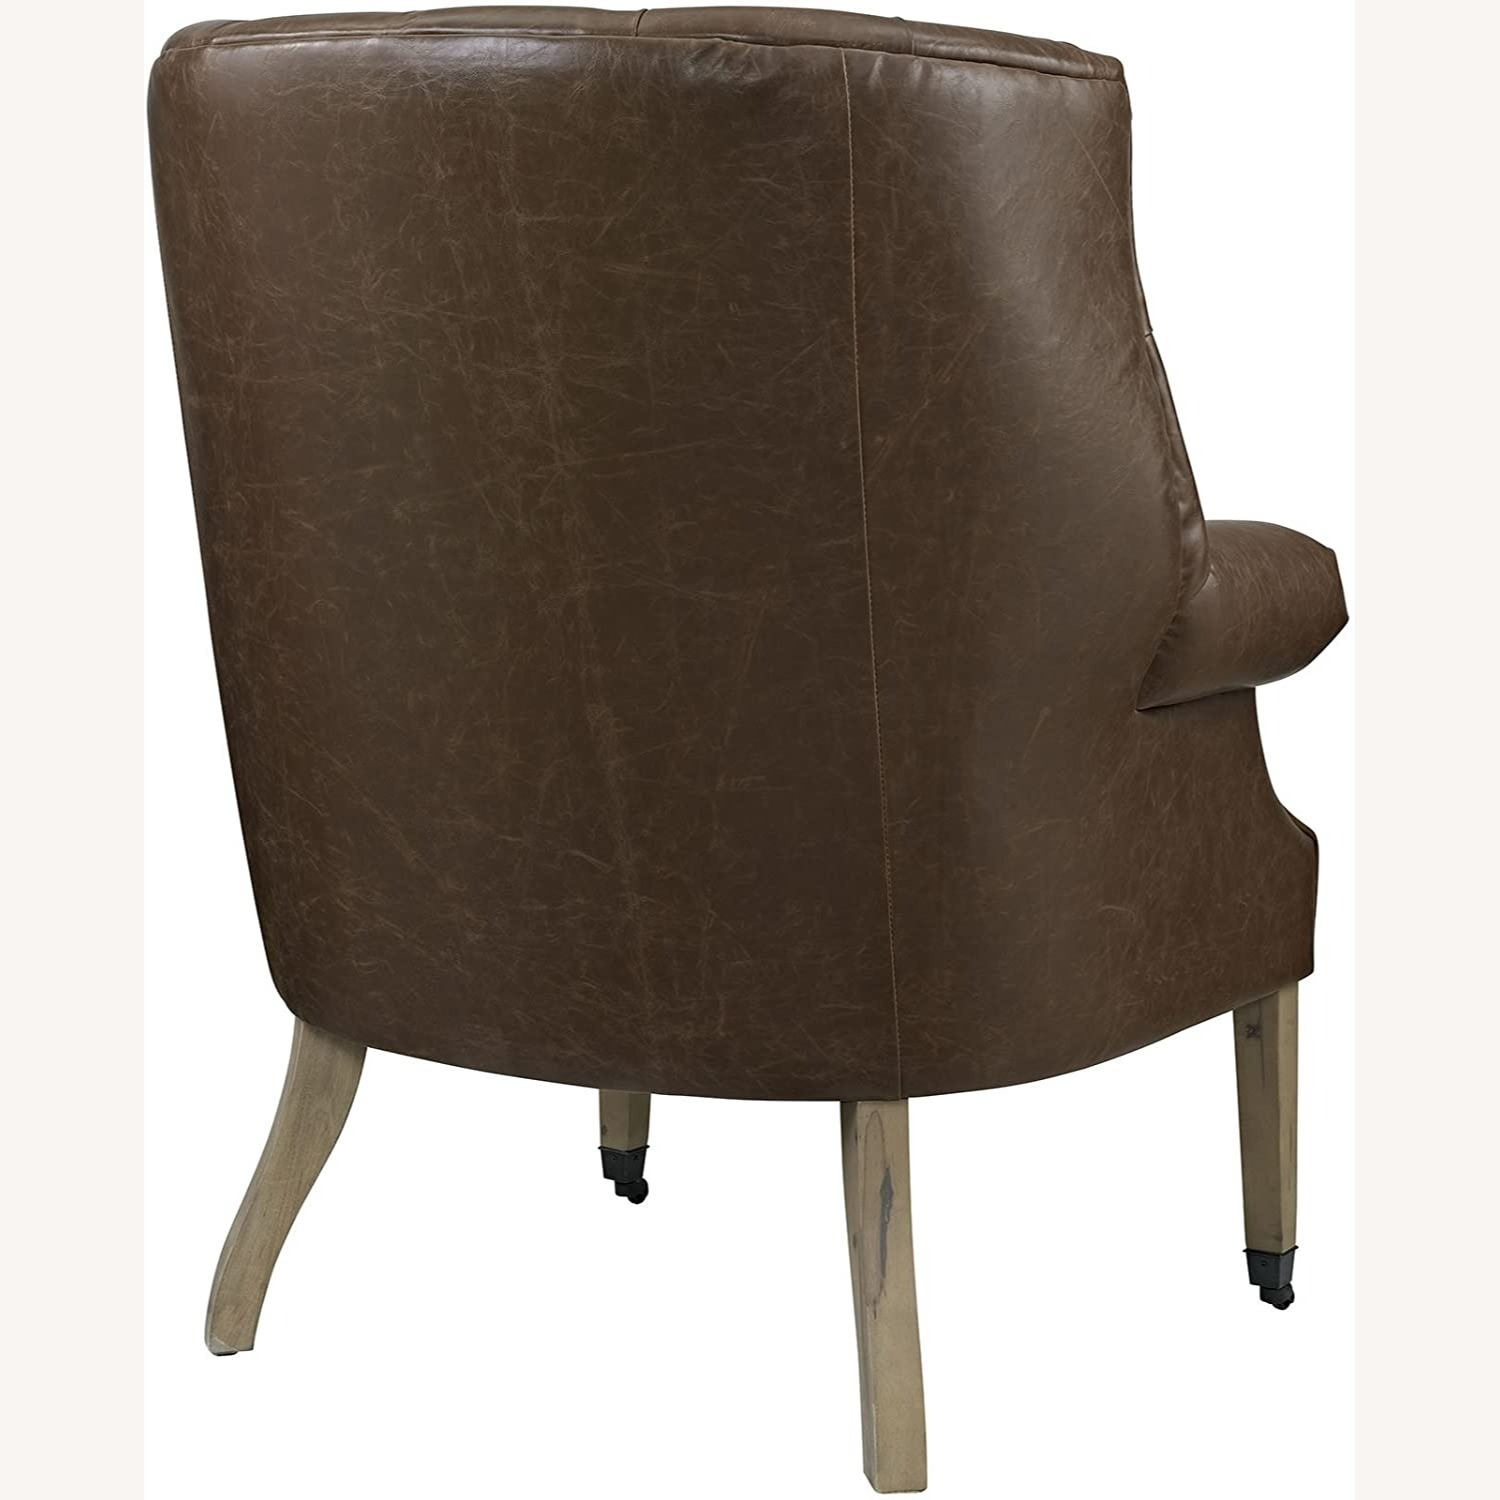 Accent Chair In Brown Vinyl Upholstery Finish - image-2